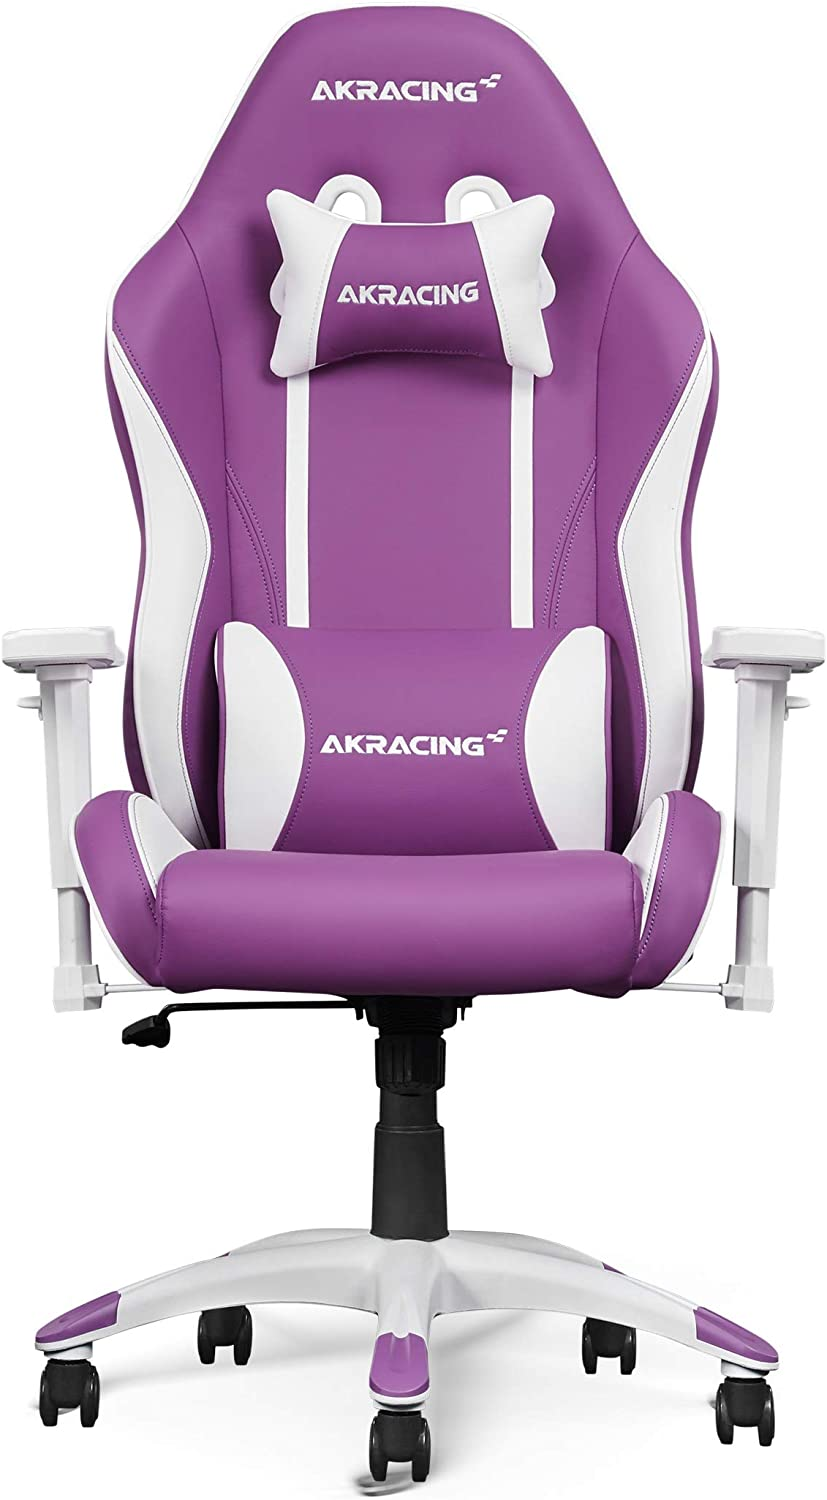 71LMjiimwUL. AC SL1500 - What Is The Best Gaming Chair For Short Person - ChairPicks